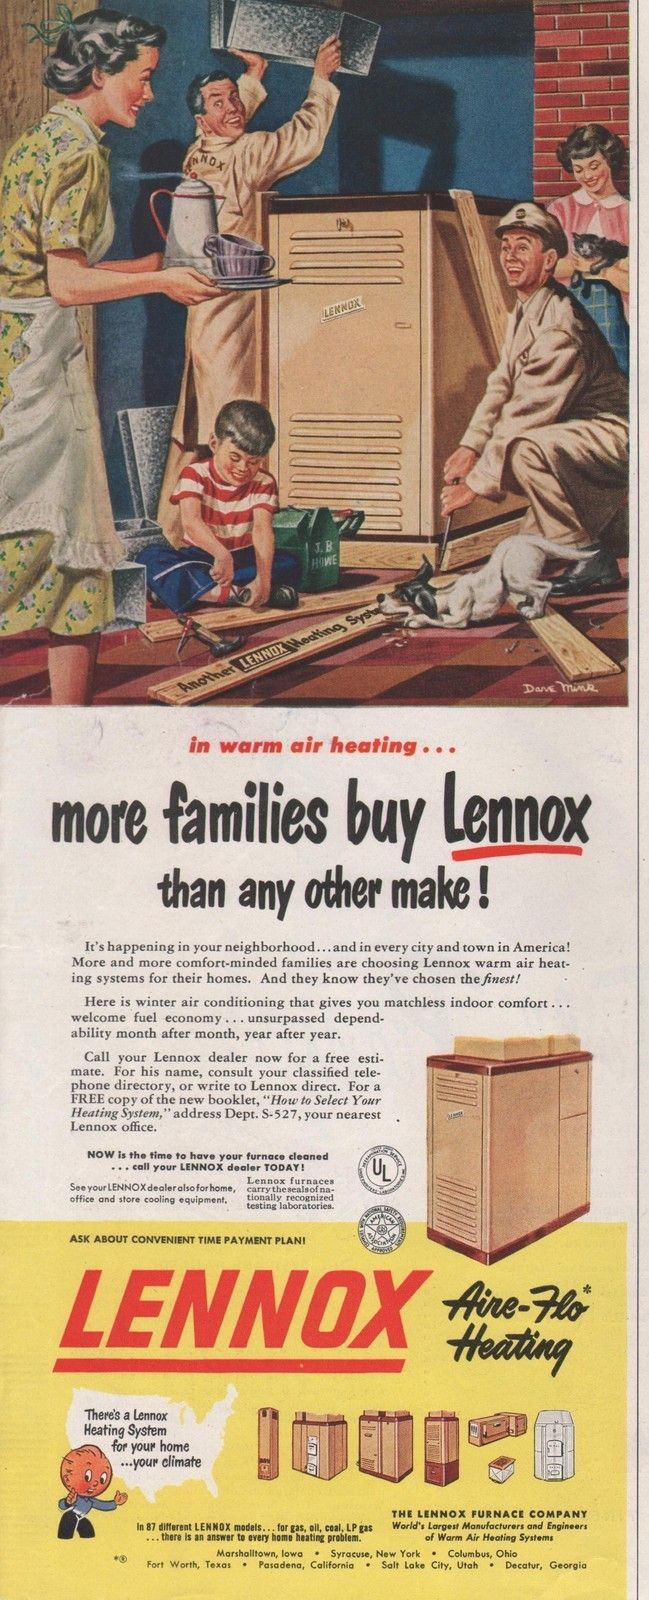 1950 Vintage Lennox Furance Aire Flo Heating More Families Buy